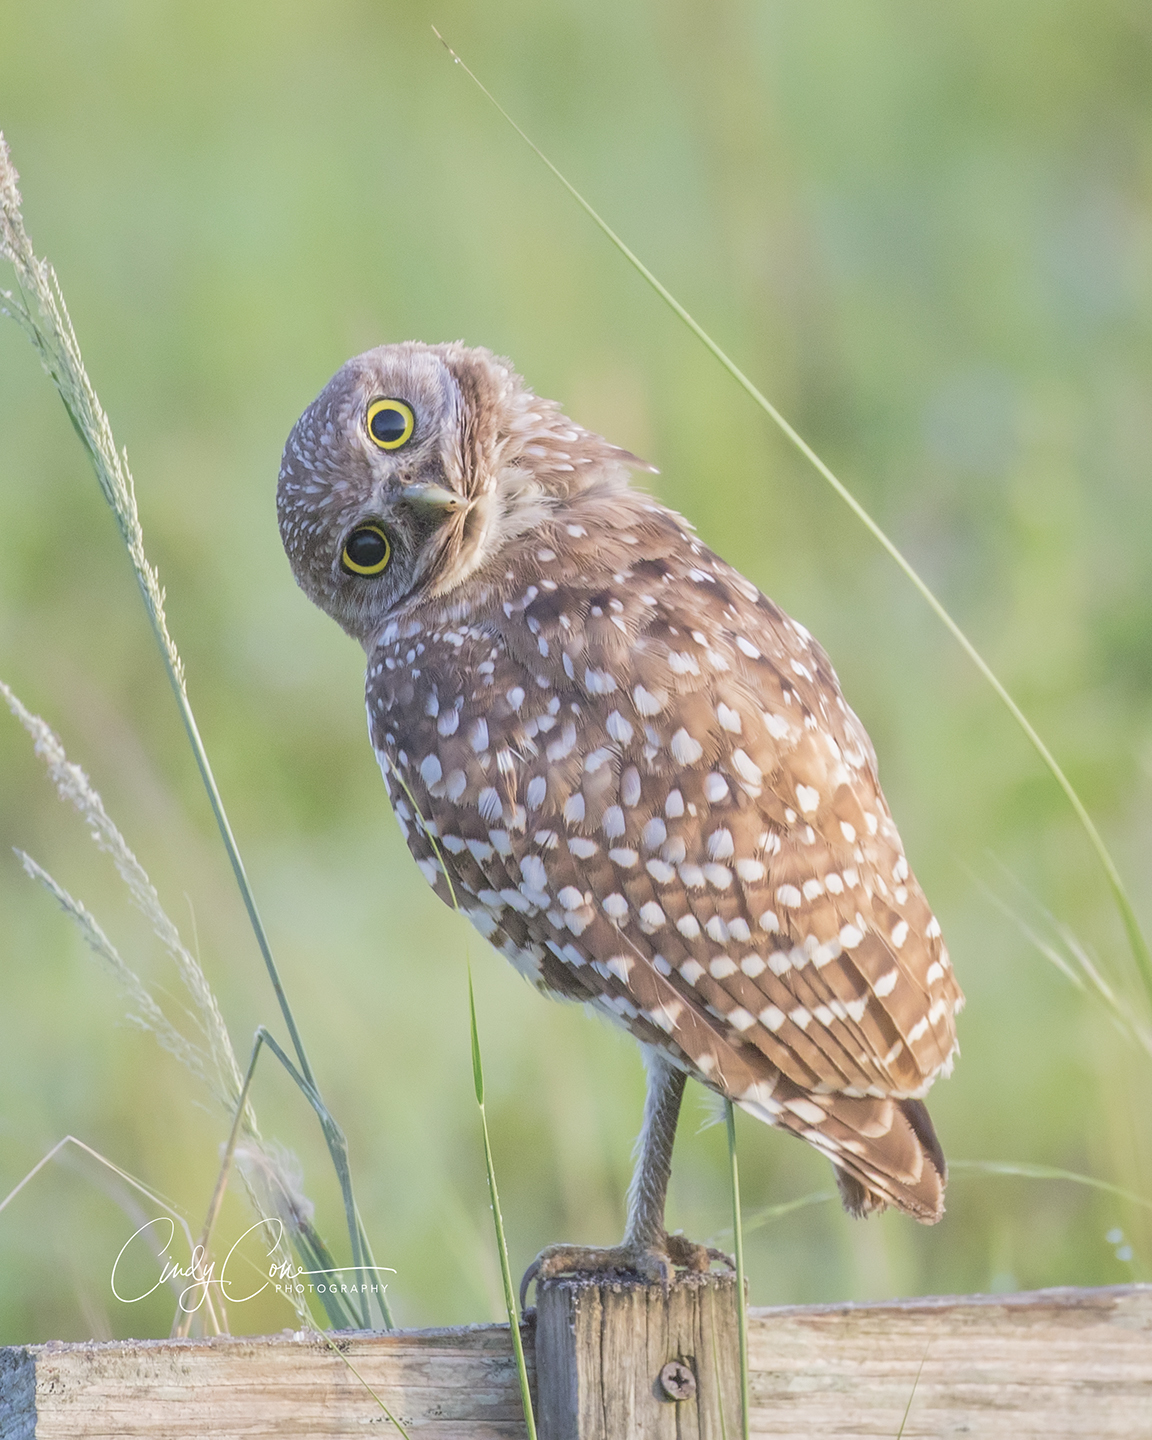 Quizzical burrowing owl, Cape Coral, Florida